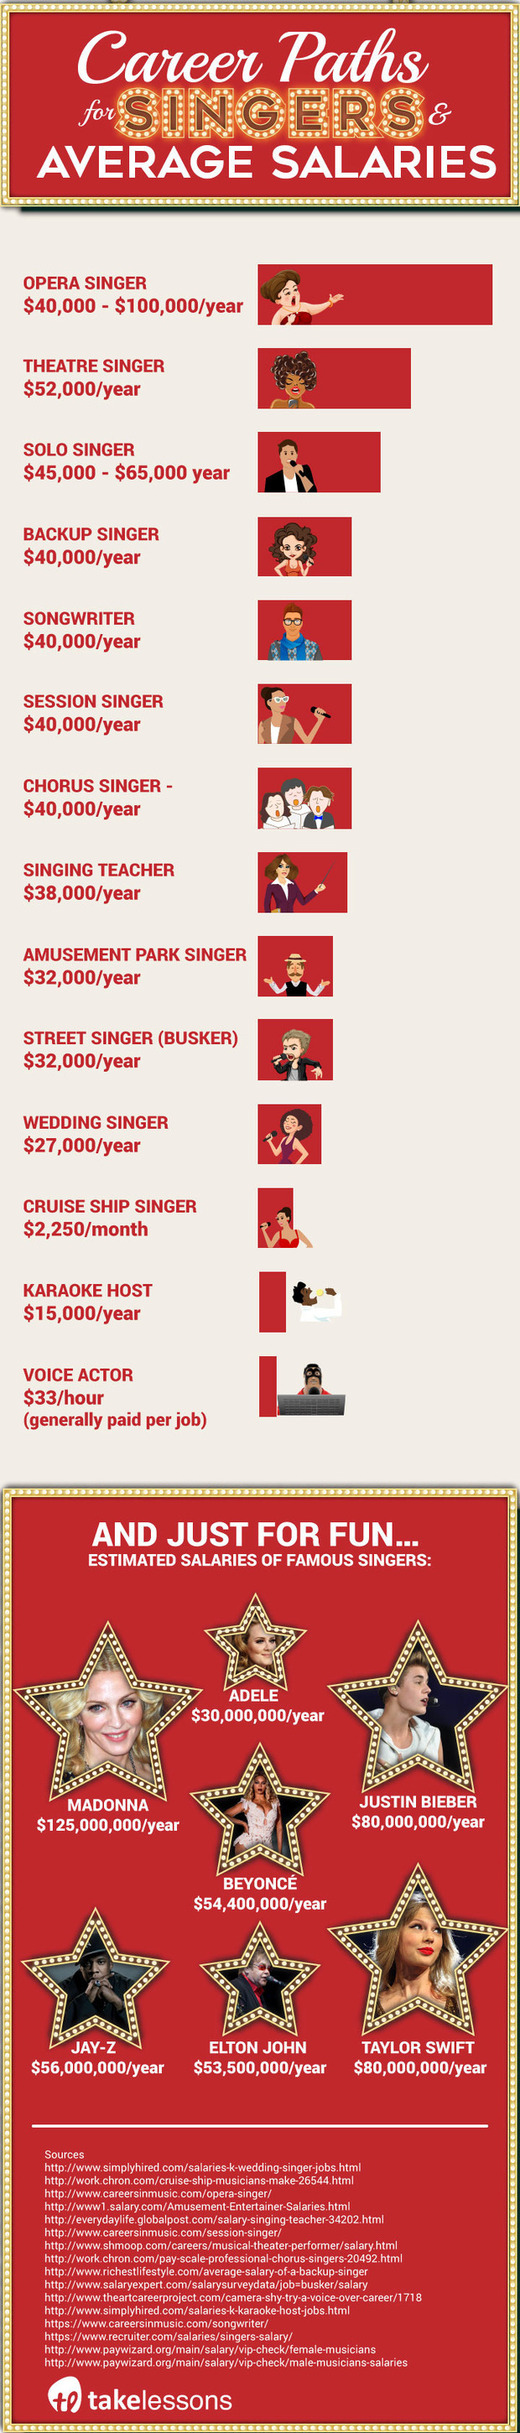 How To Make A Living As A Singer - MTT - Music Think Tank